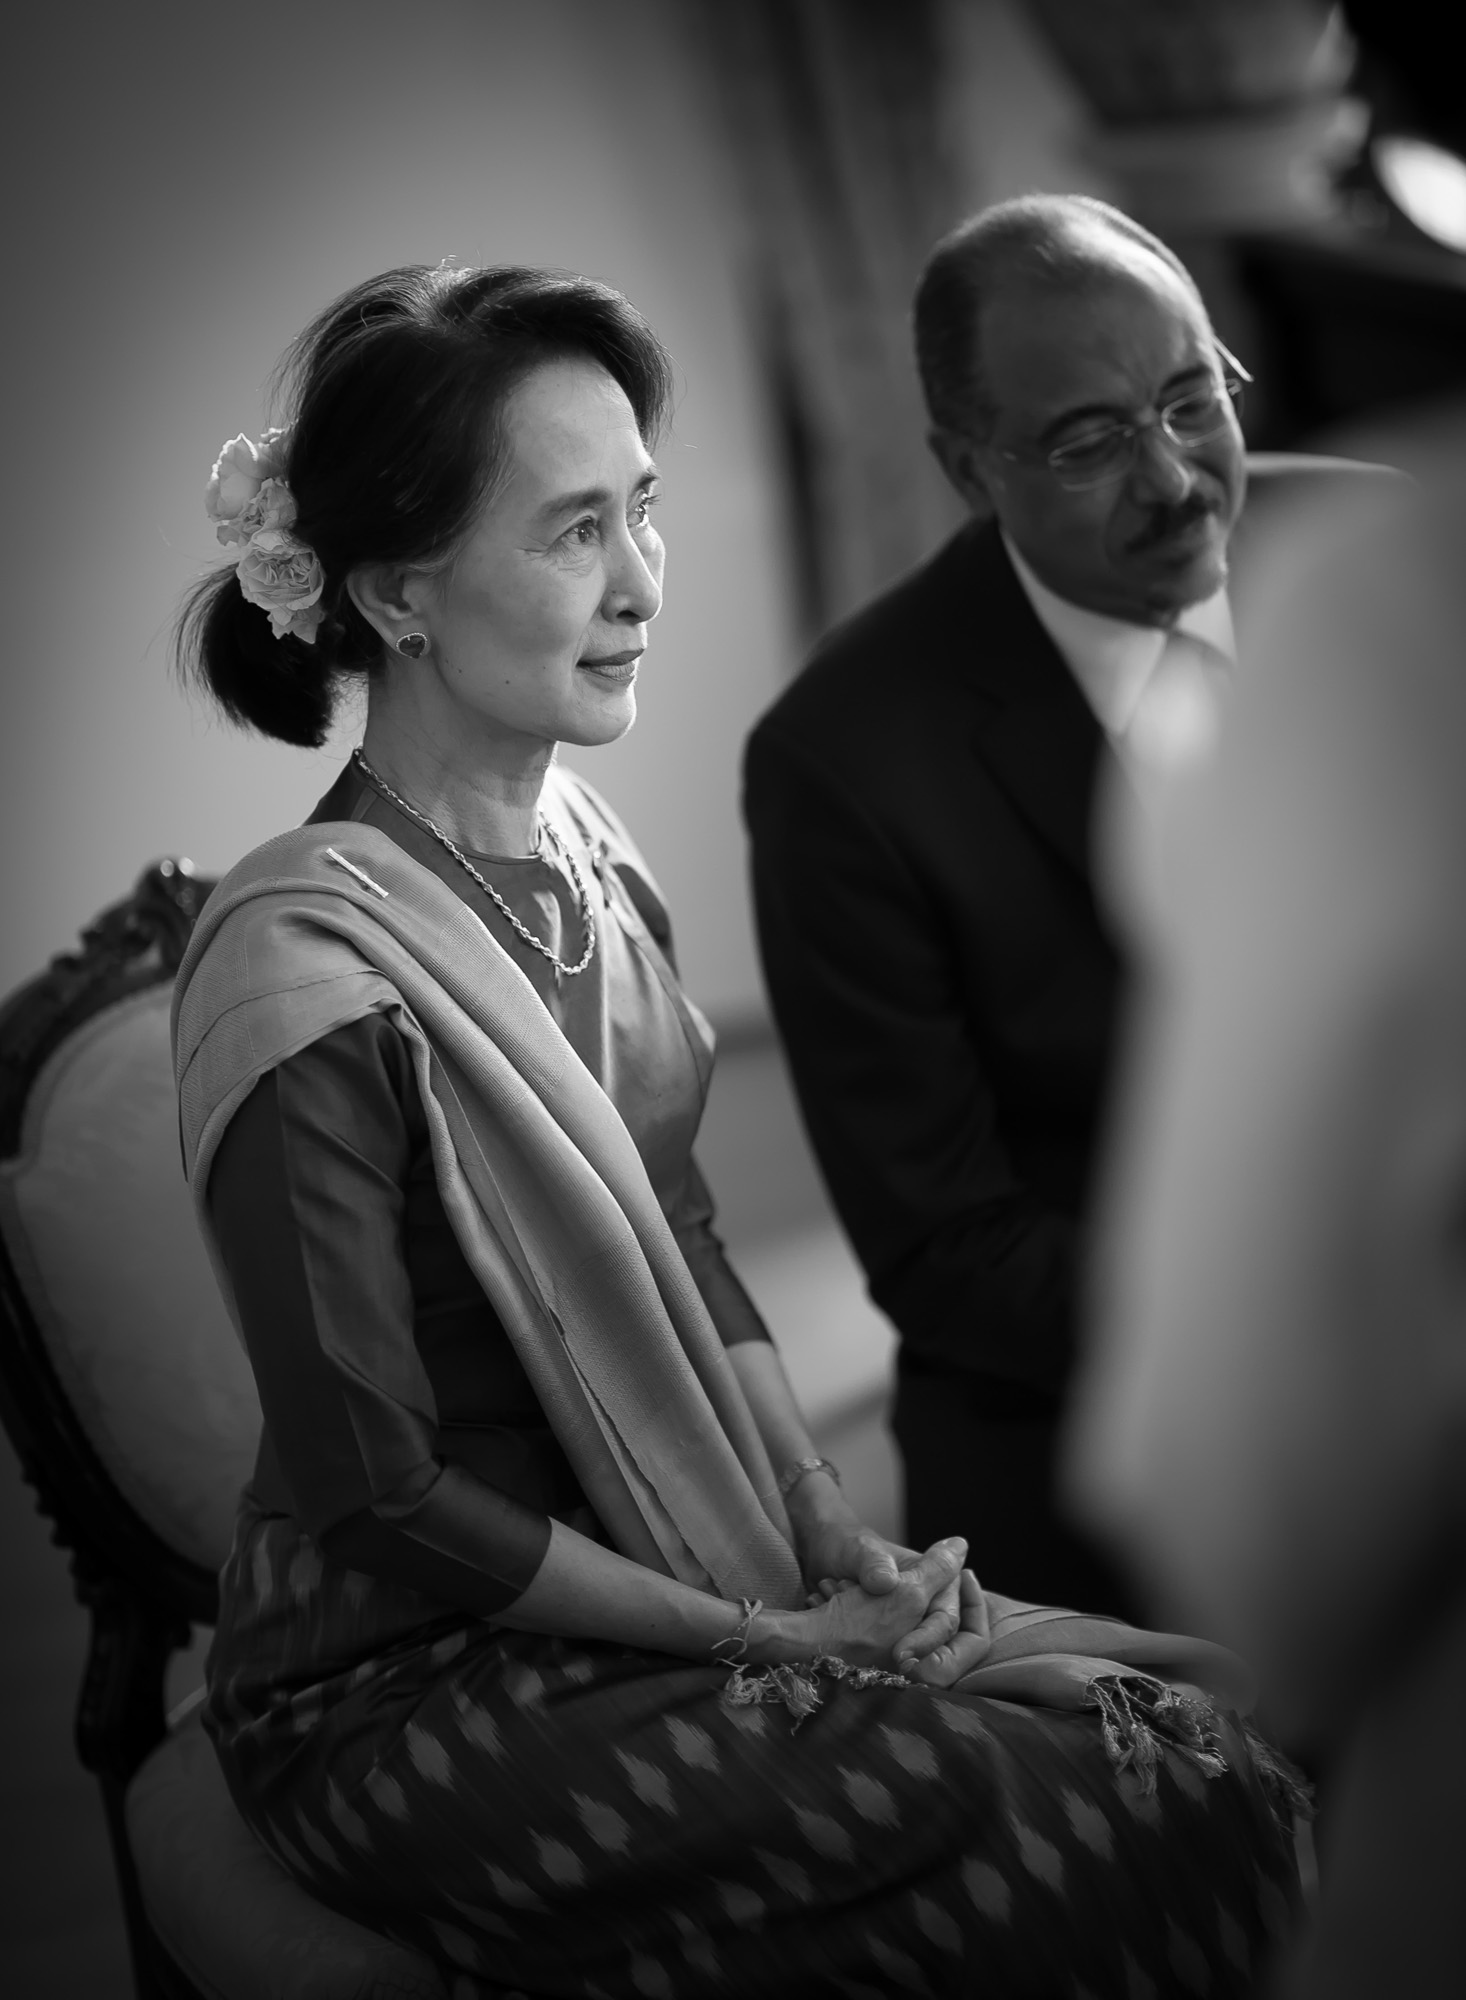 The visit of Aung San Suu Kyi